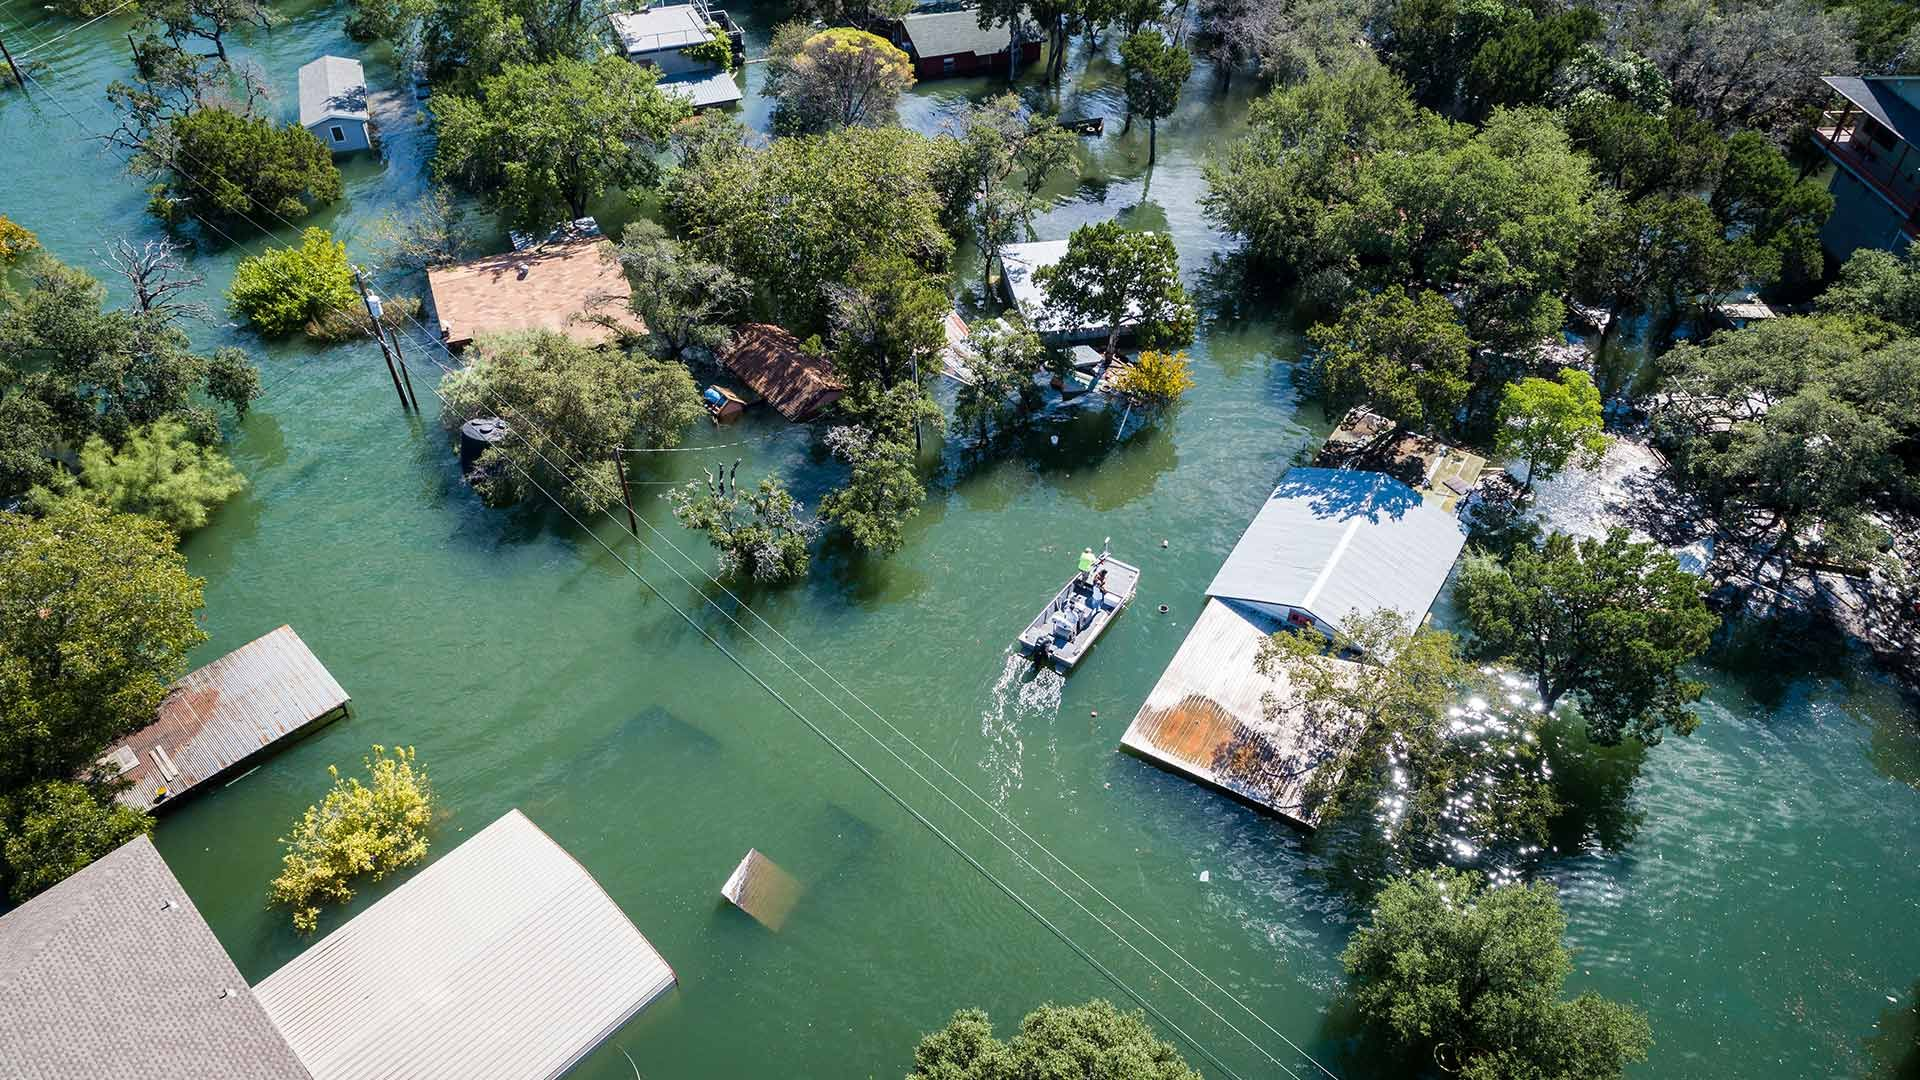 aerial view of flooded village in remote location with trees